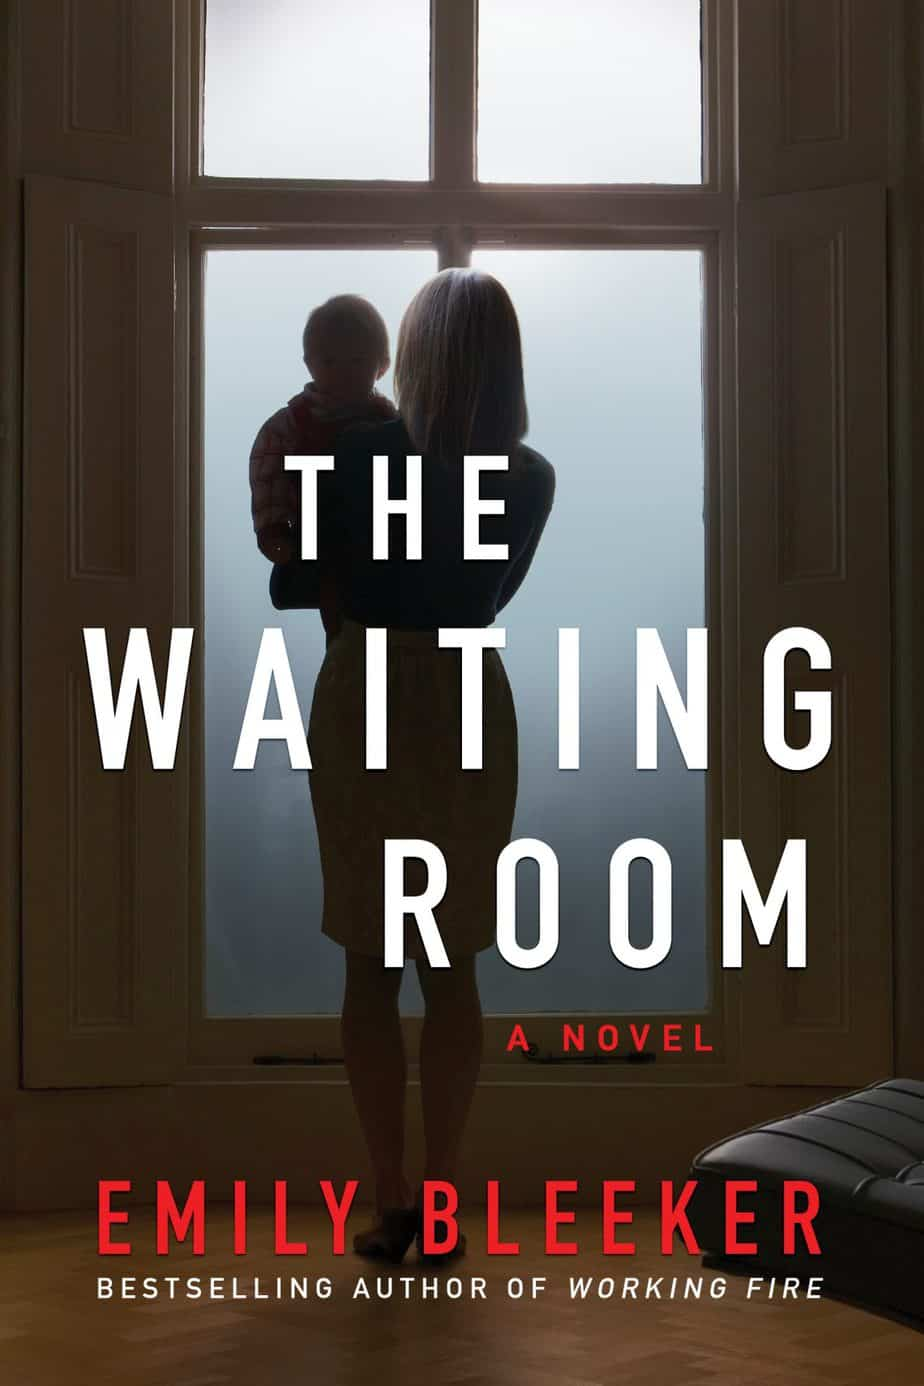 The Waiting Room Emily Bleeker